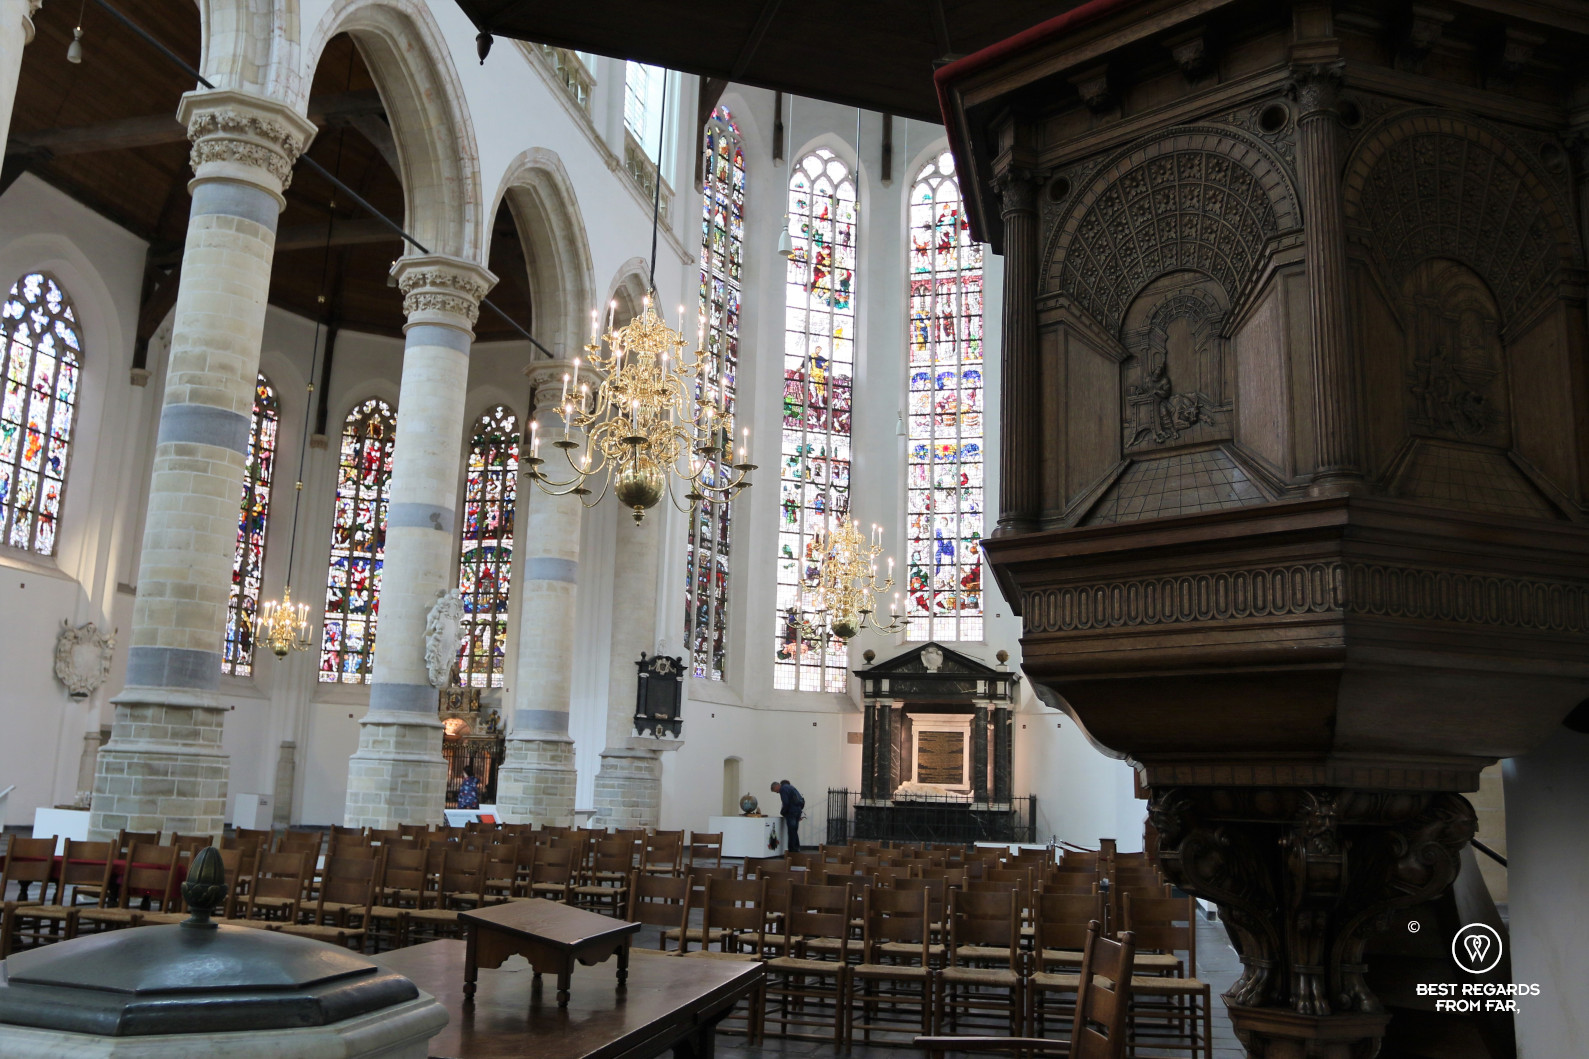 The interior of the Old Church, Delft, The Netherlands